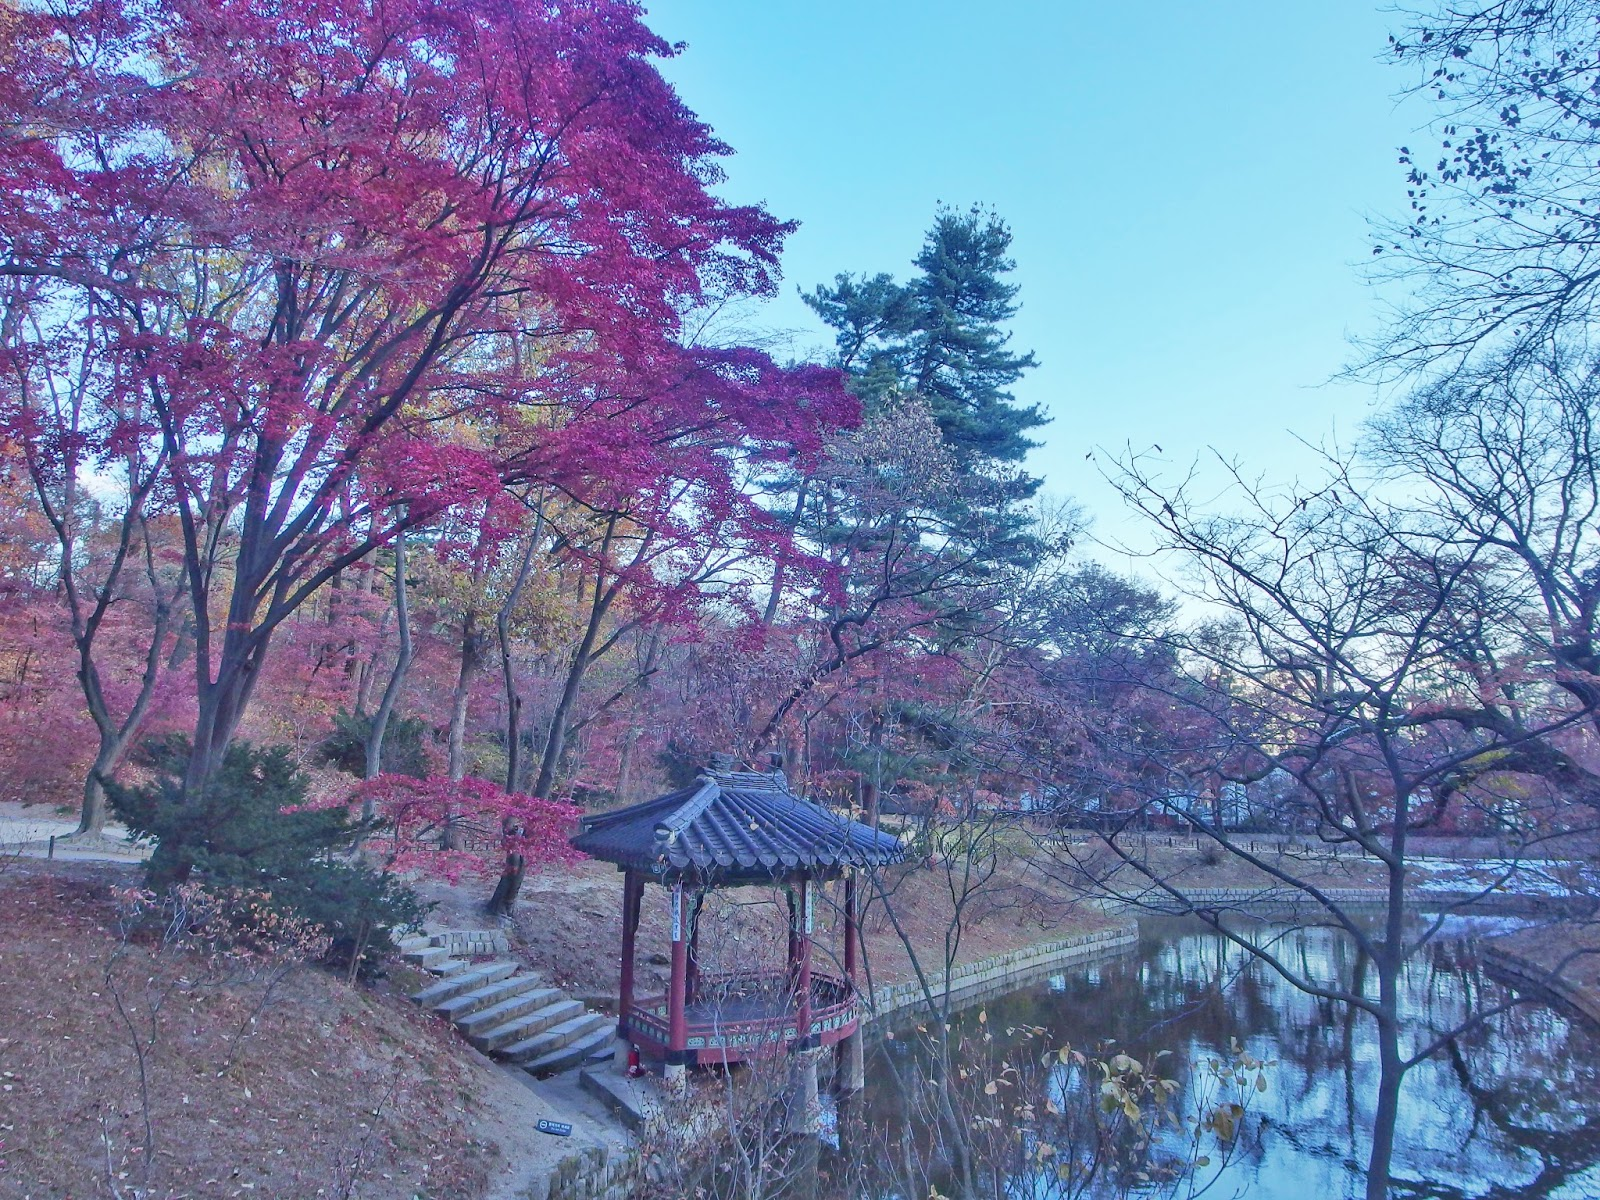 A 7-day South Korea Itinerary for City Dwellers and Nature